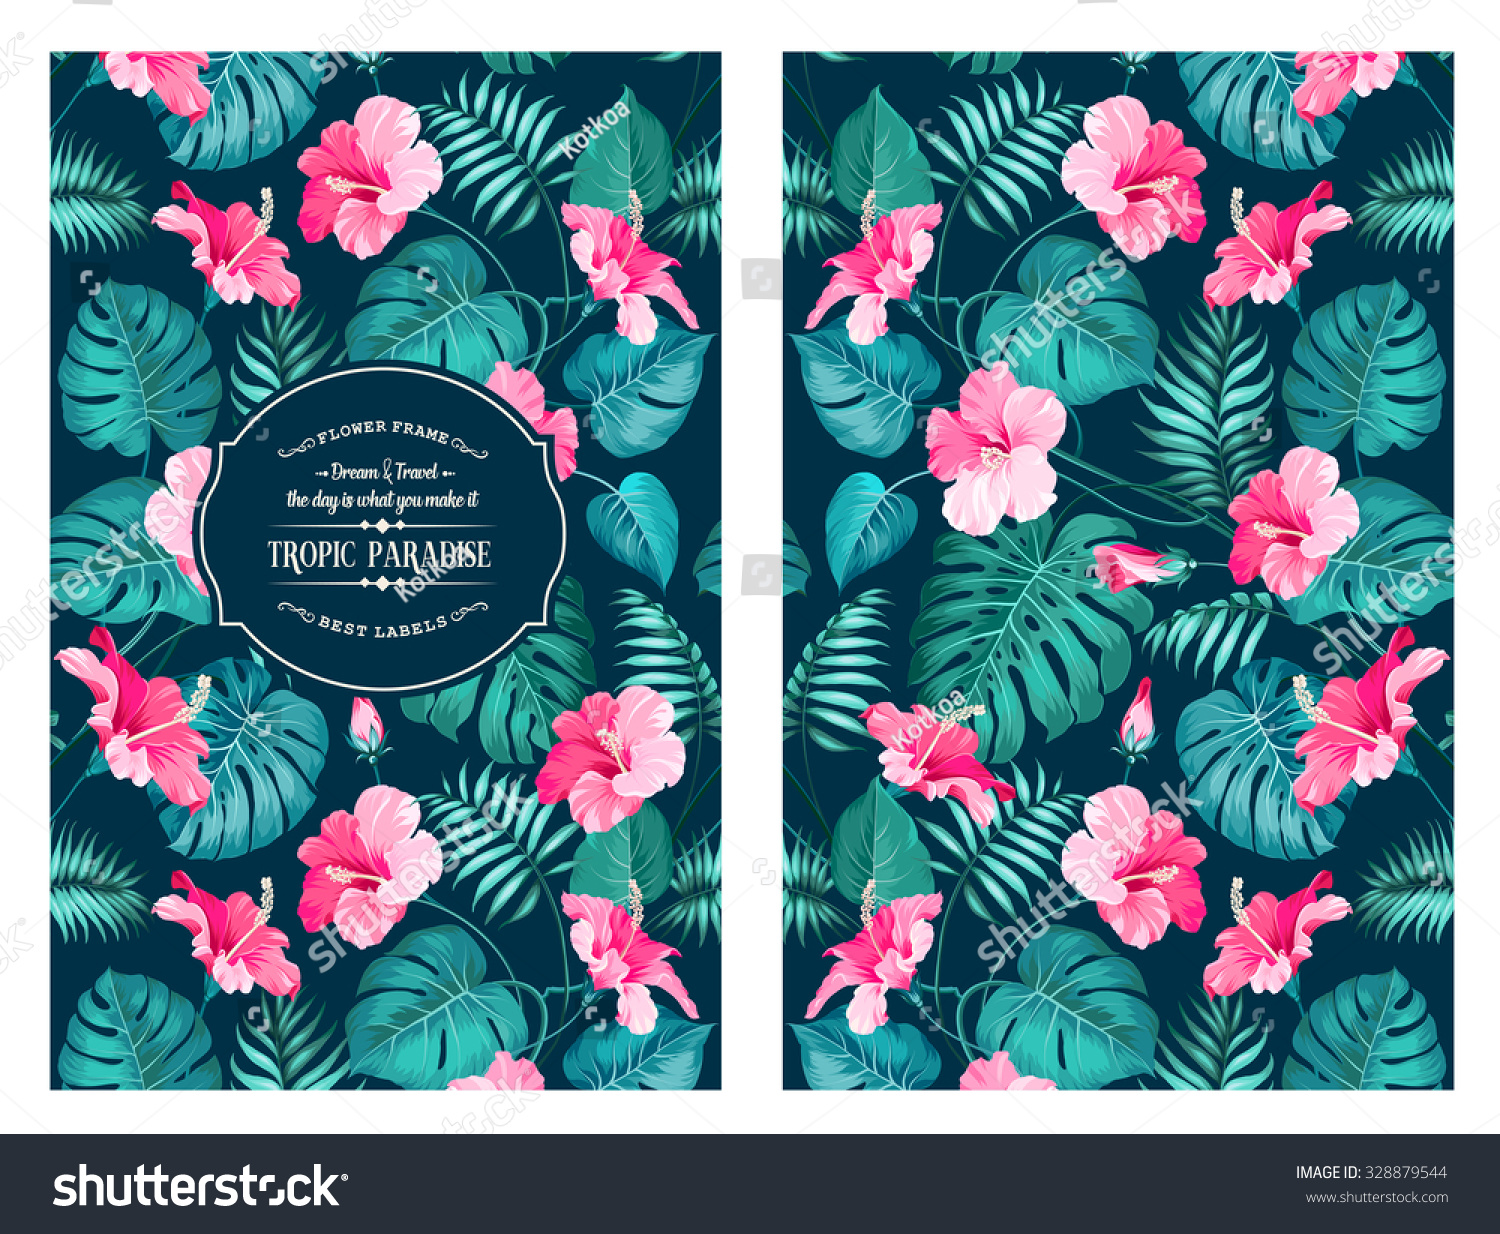 Book Cover Design Nature : Tropical flower pattern on book cover stock vector